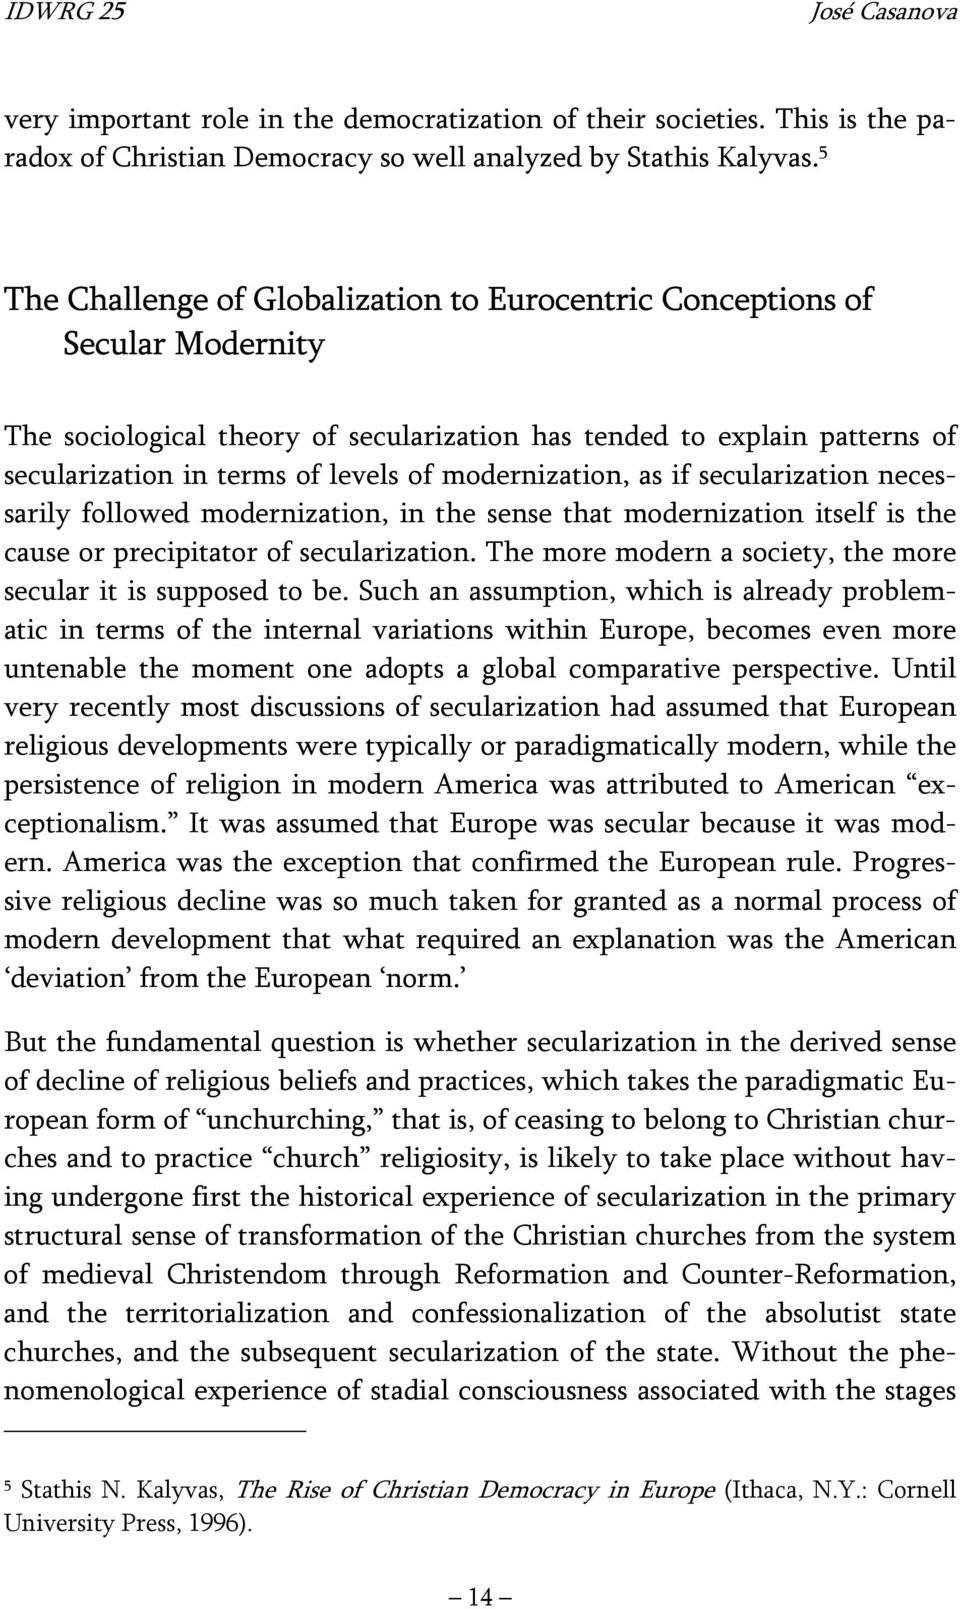 modernization, as if secularization necessarily followed modernization, in the sense that modernization itself is the cause or precipitator of secularization.